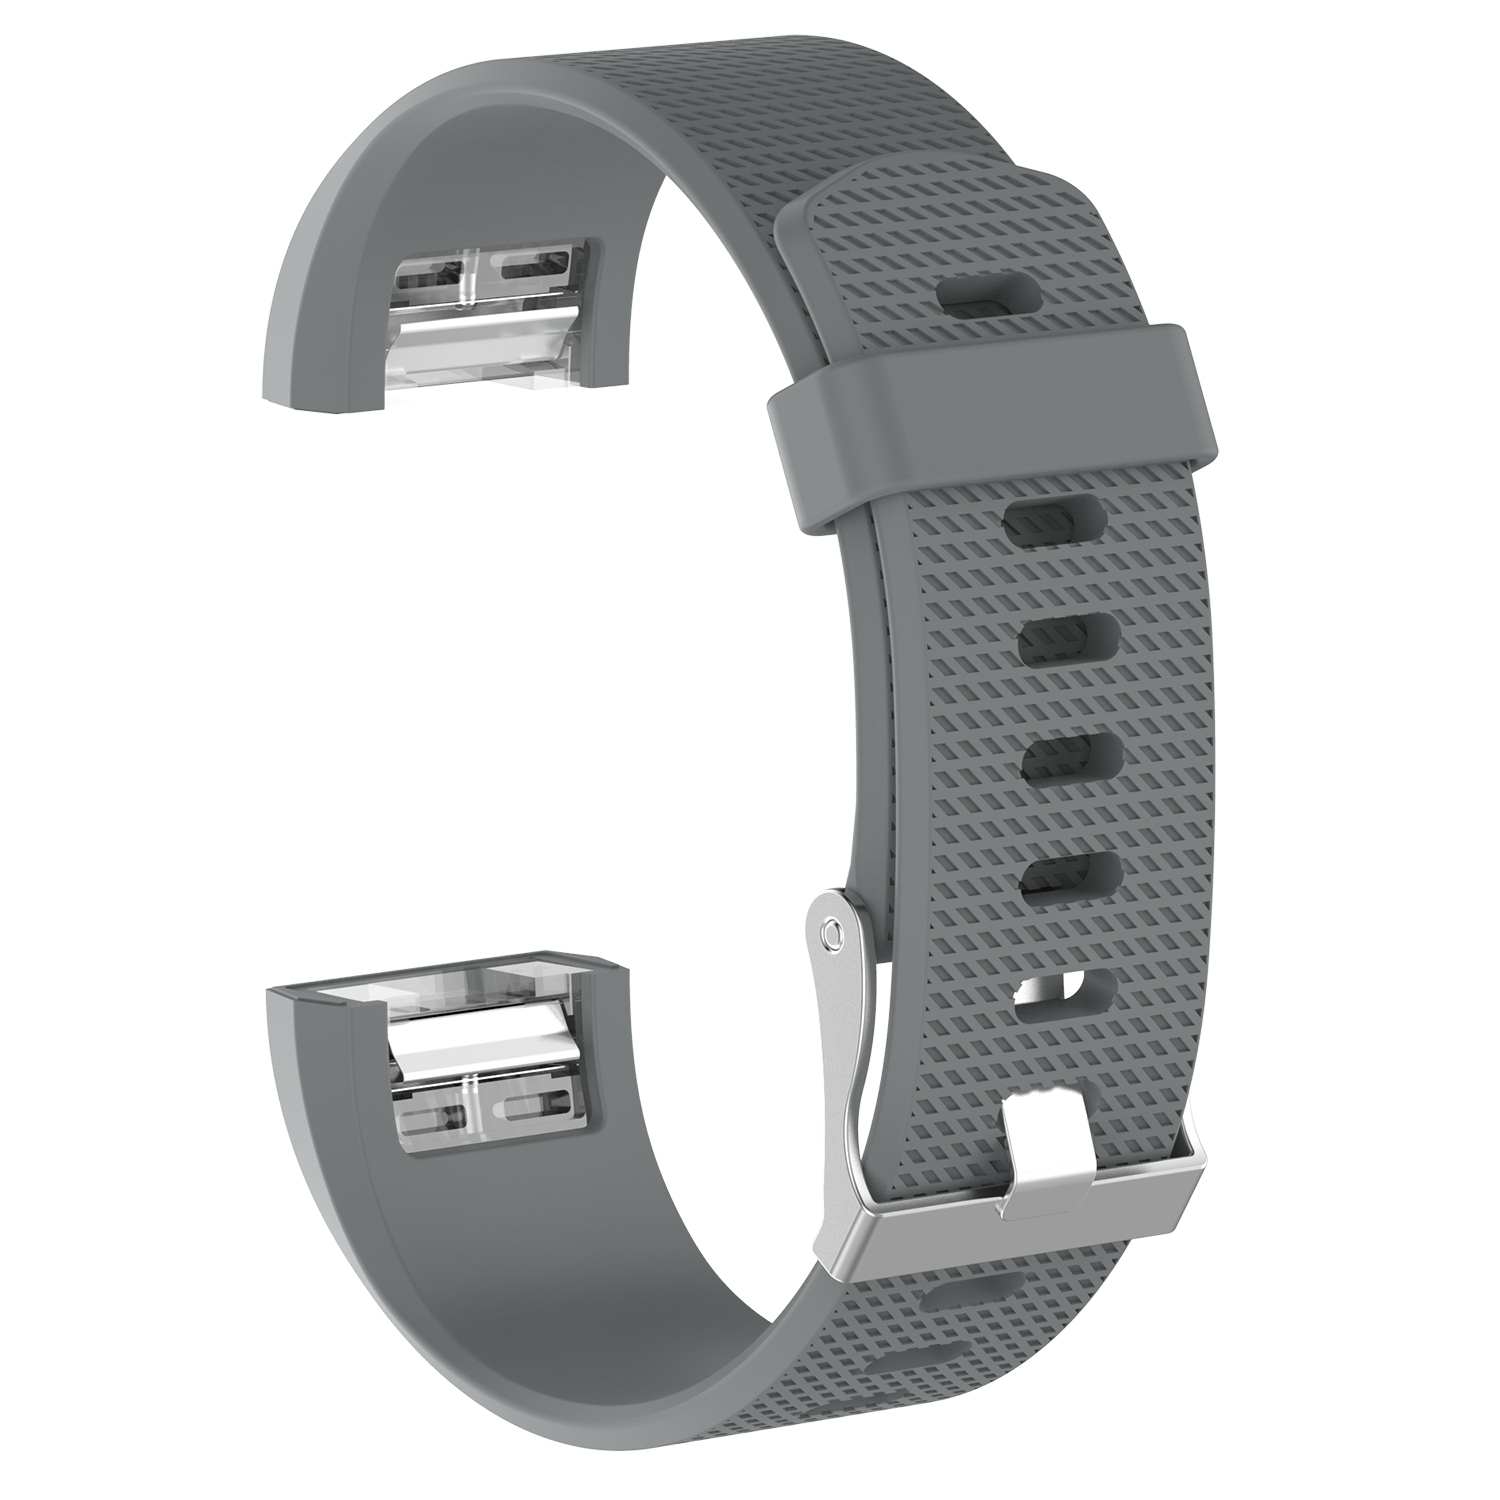 Replacement-Silicone-Wristband-Watch-Strap-Bands-Bracelet-For-Fitbit-Charge-2 thumbnail 24